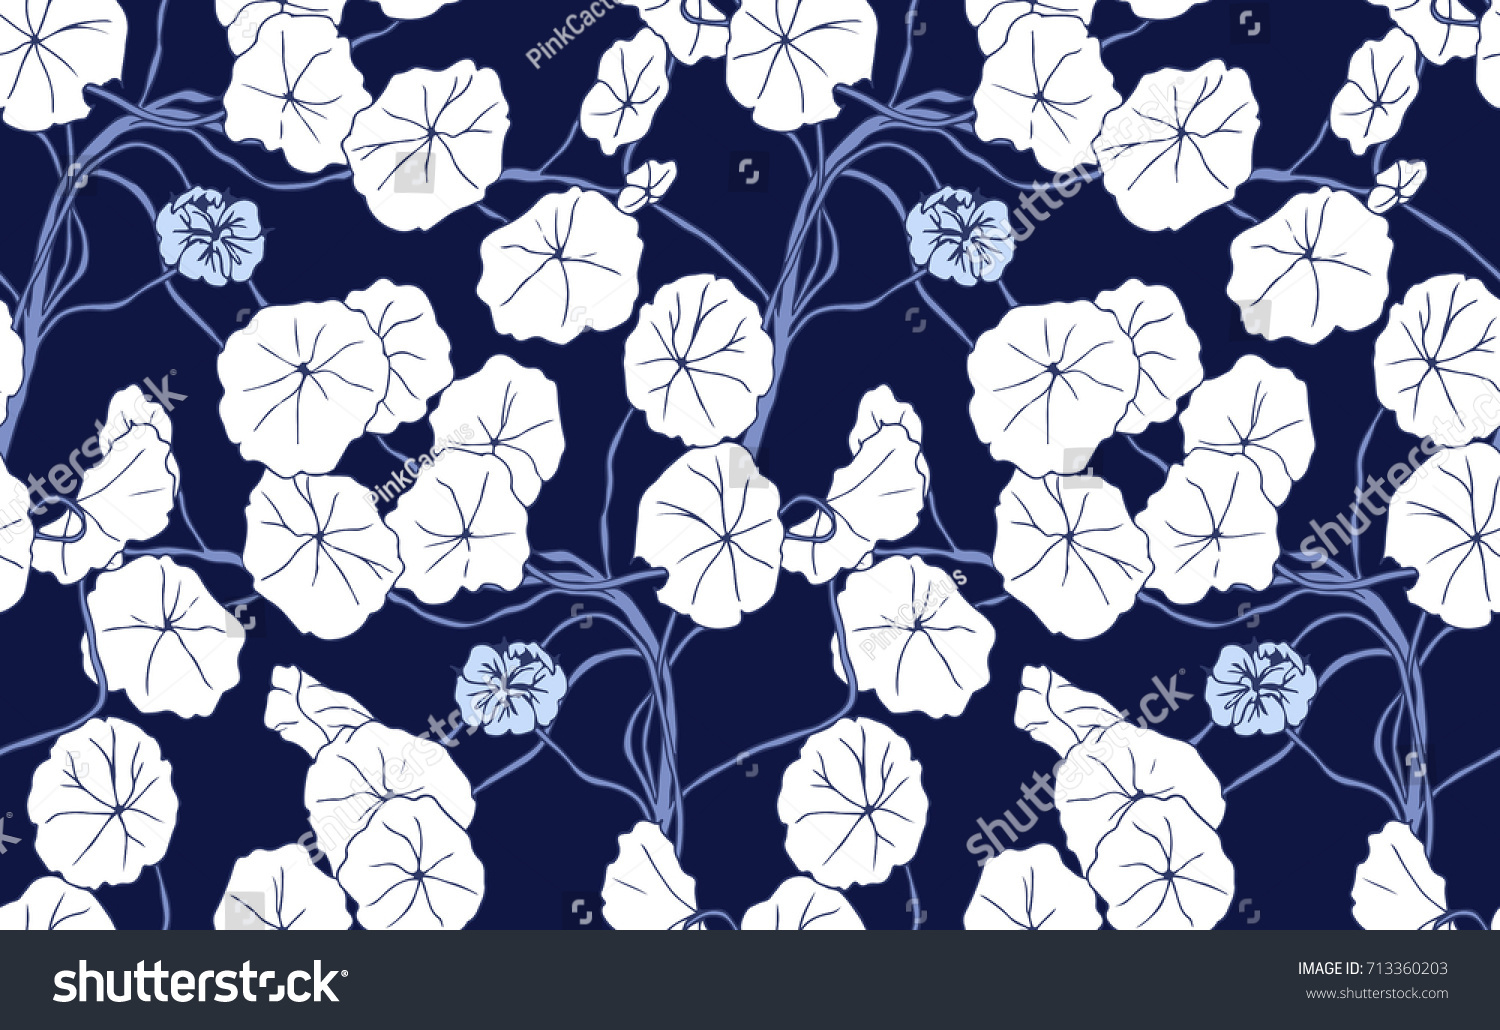 Navy Blue White Floral Background Design Stock Vector Royalty